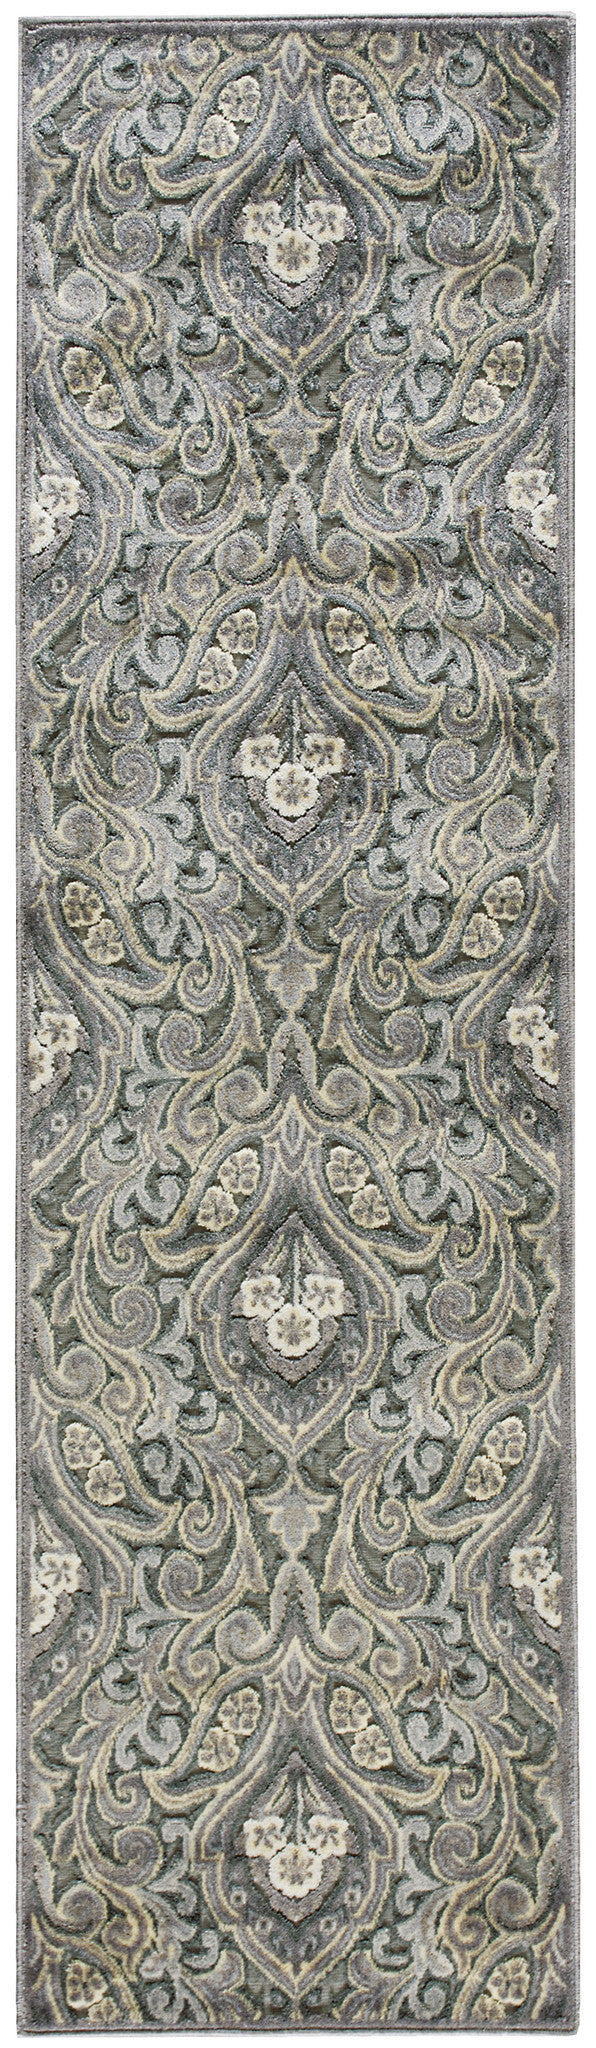 Nourison Graphic Illusions Grey Area Rug GIL11 GRY